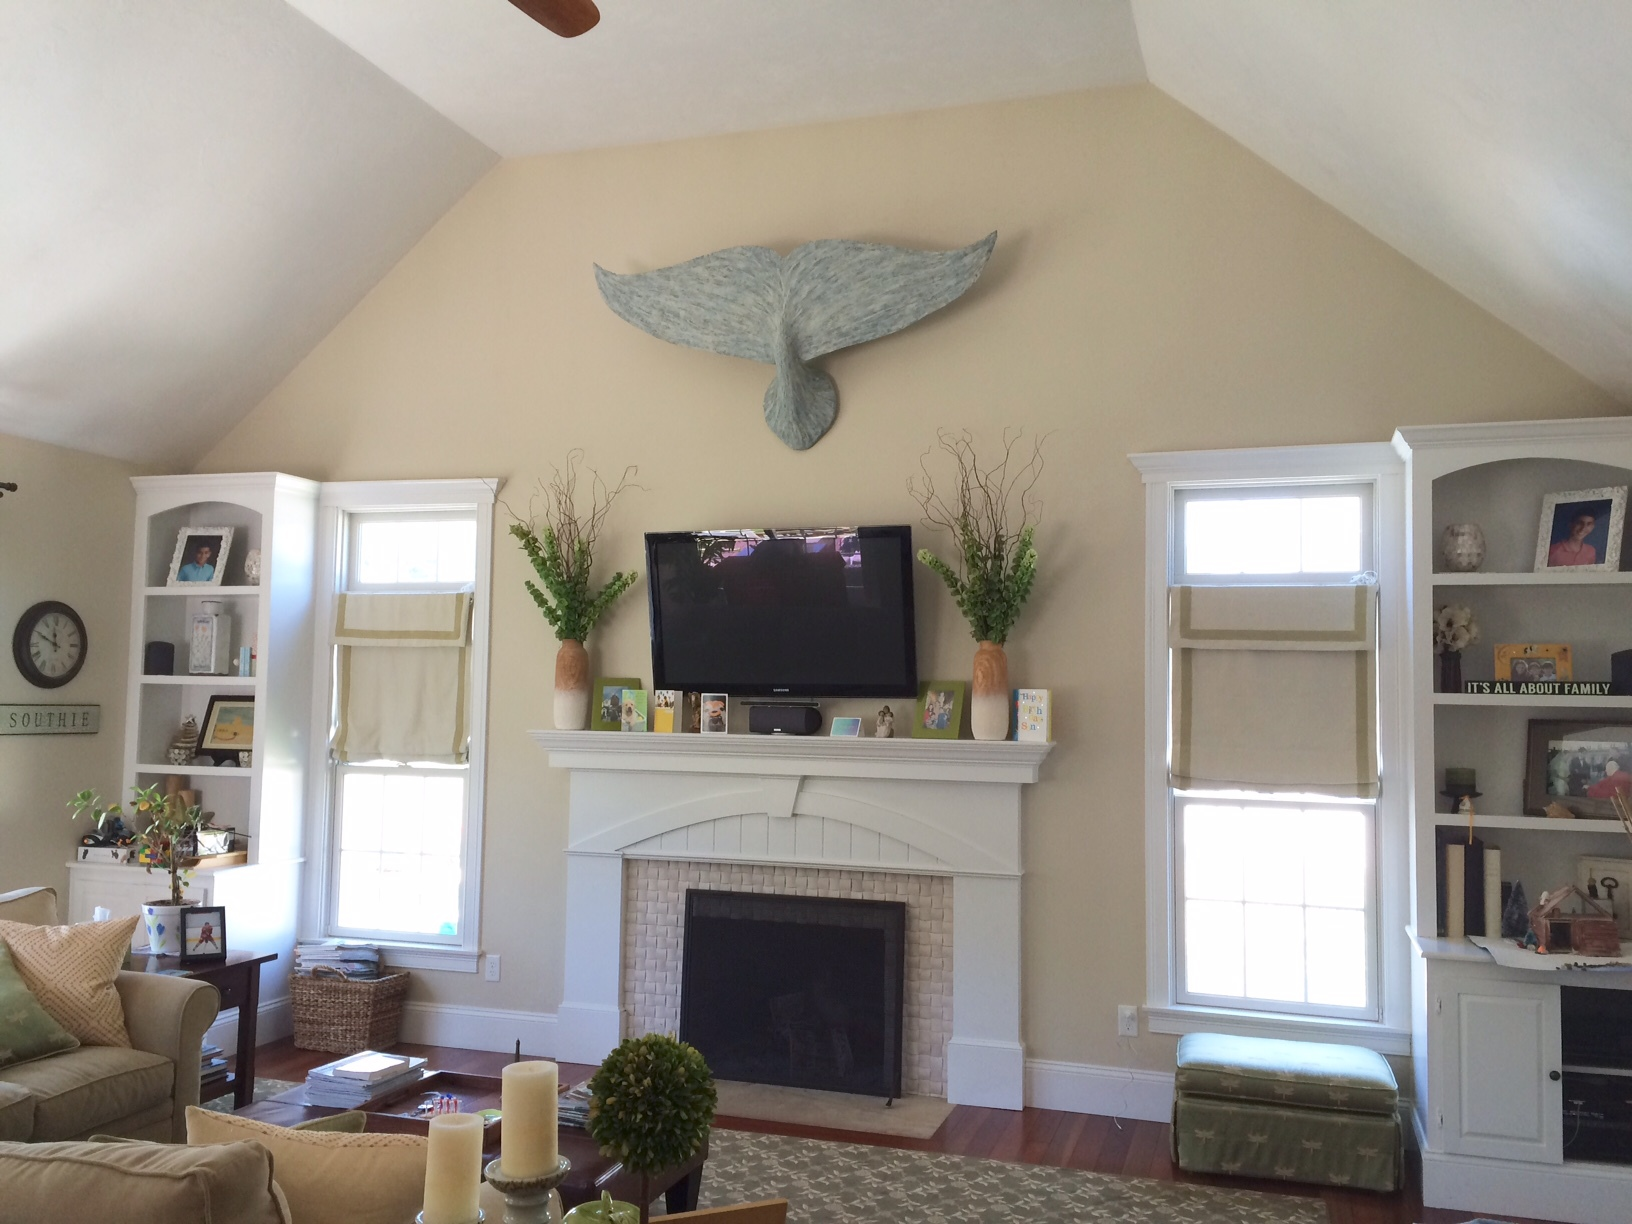 6ft whale tail in blue/gray